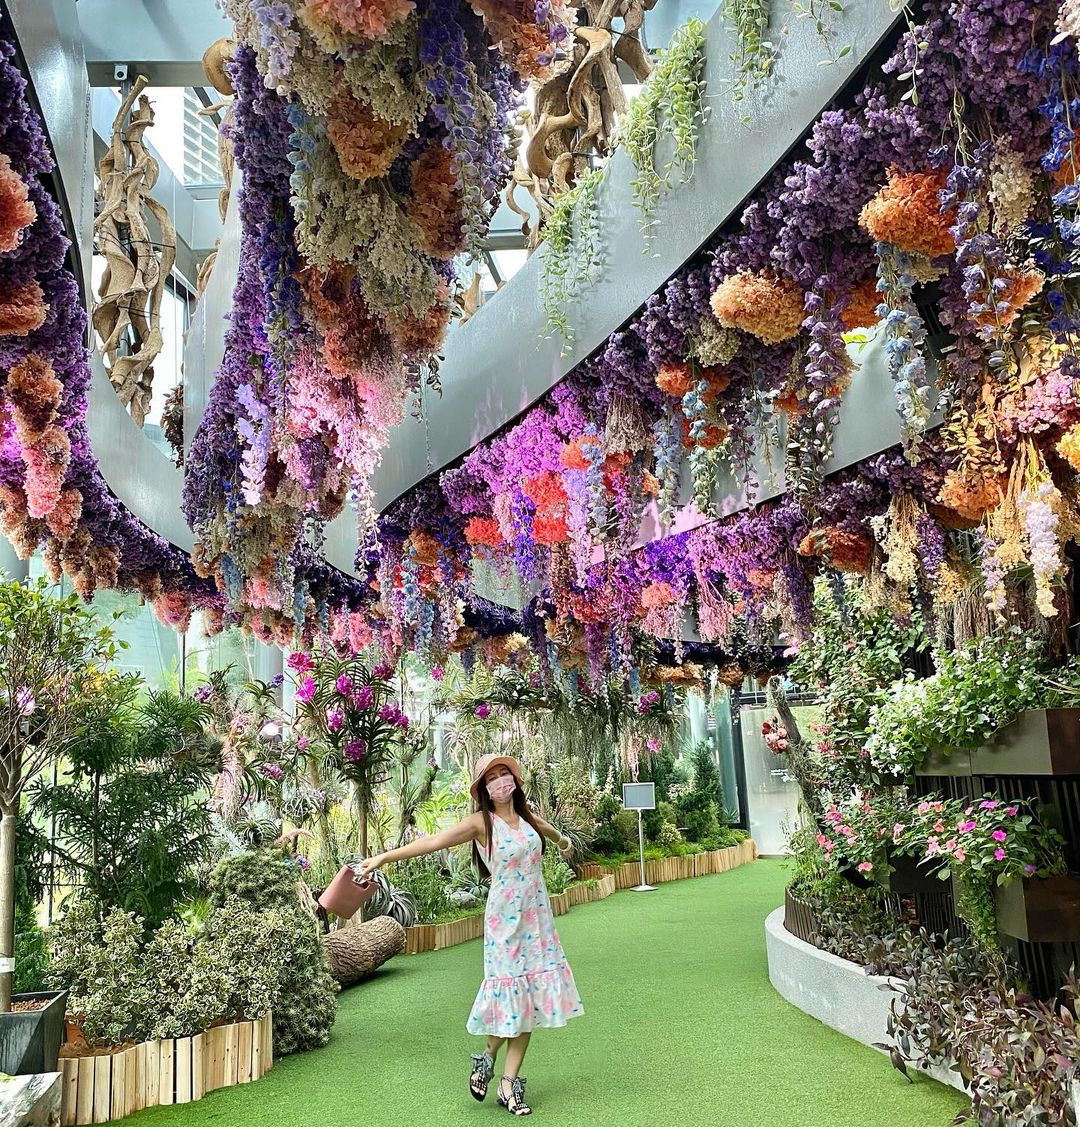 Floral Fantasy, Gardens by the Bay